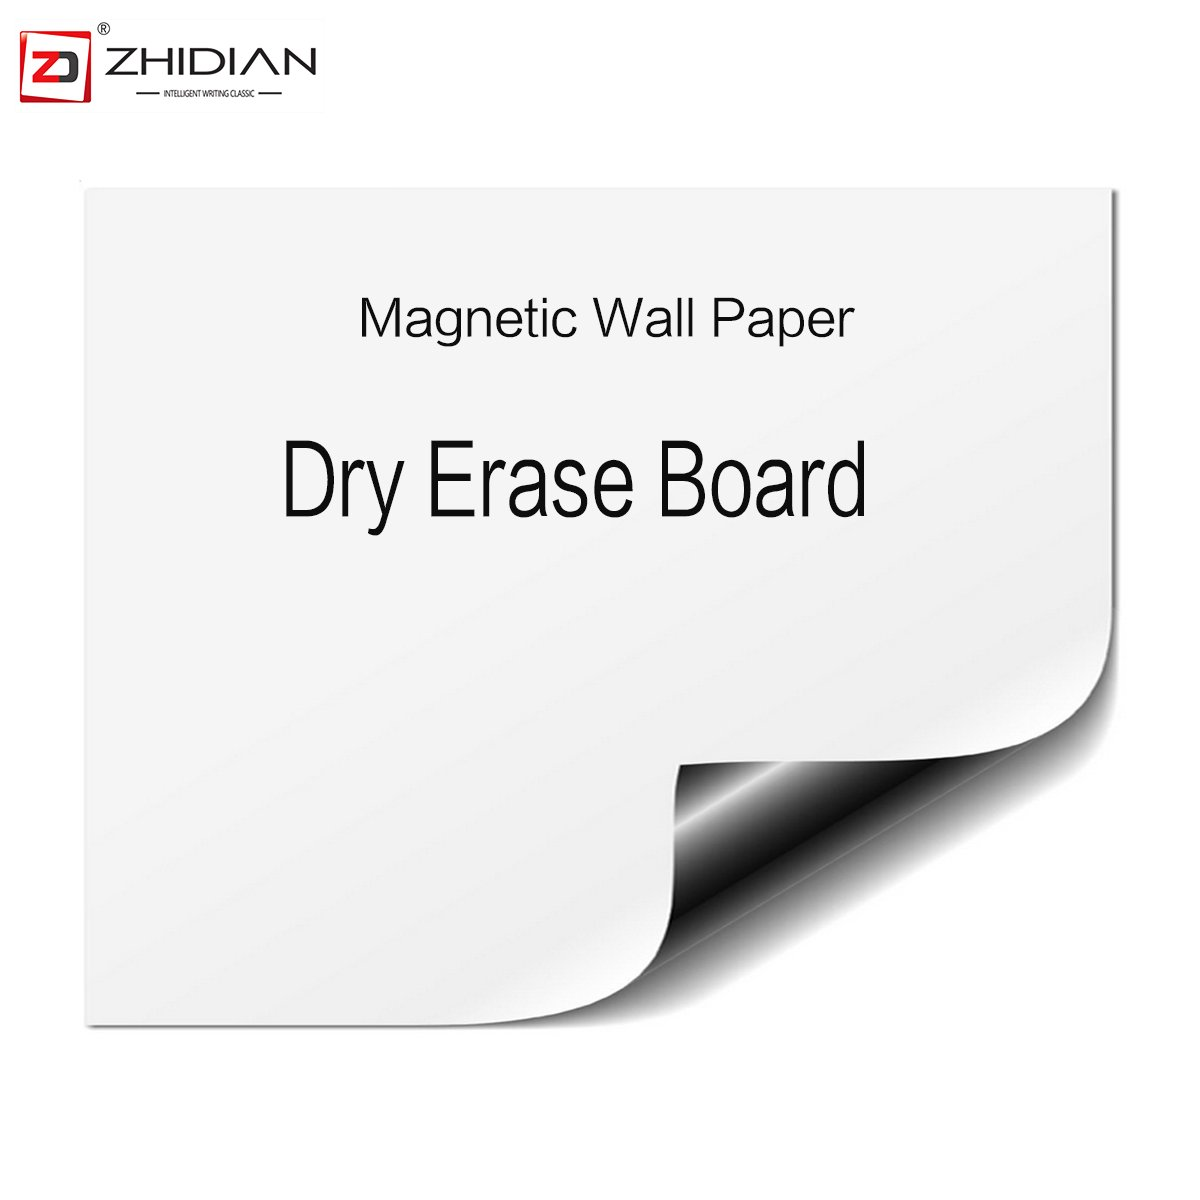 ZHIDIAN Magnetic Dry Erase Boards Sheets for Fridge Small Whiteboard for Home Kitchen Refrigerator Calendar 23×17 Inches (17 x 23 inch 3 Pack)